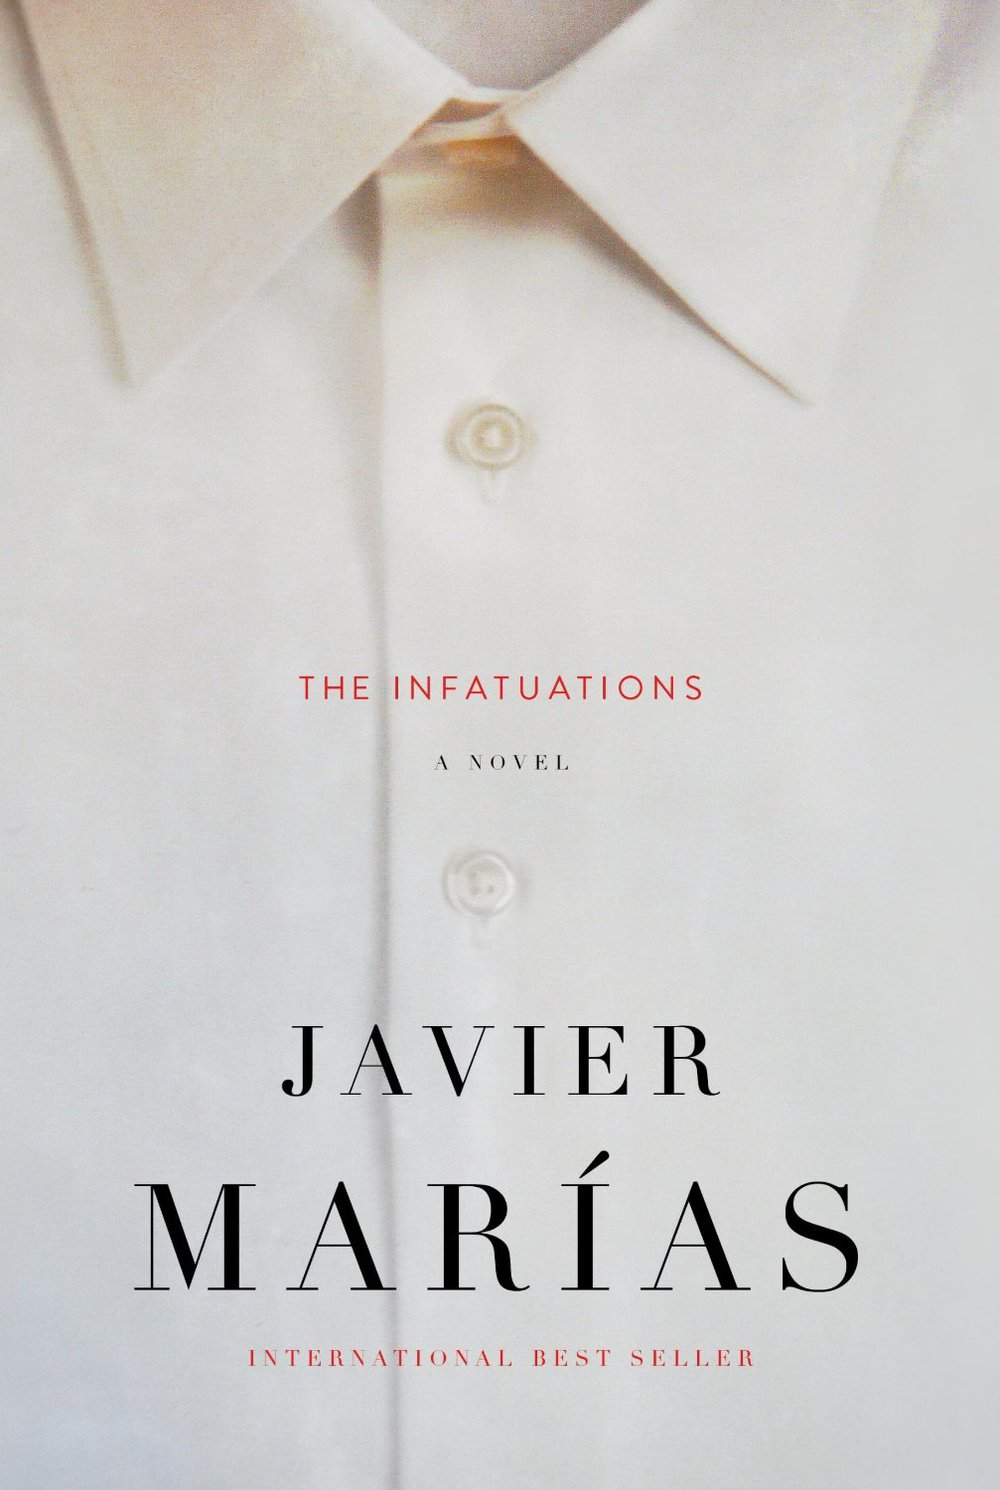 by Javier Marías, translated from SPANISH by Margaret Jull Costa